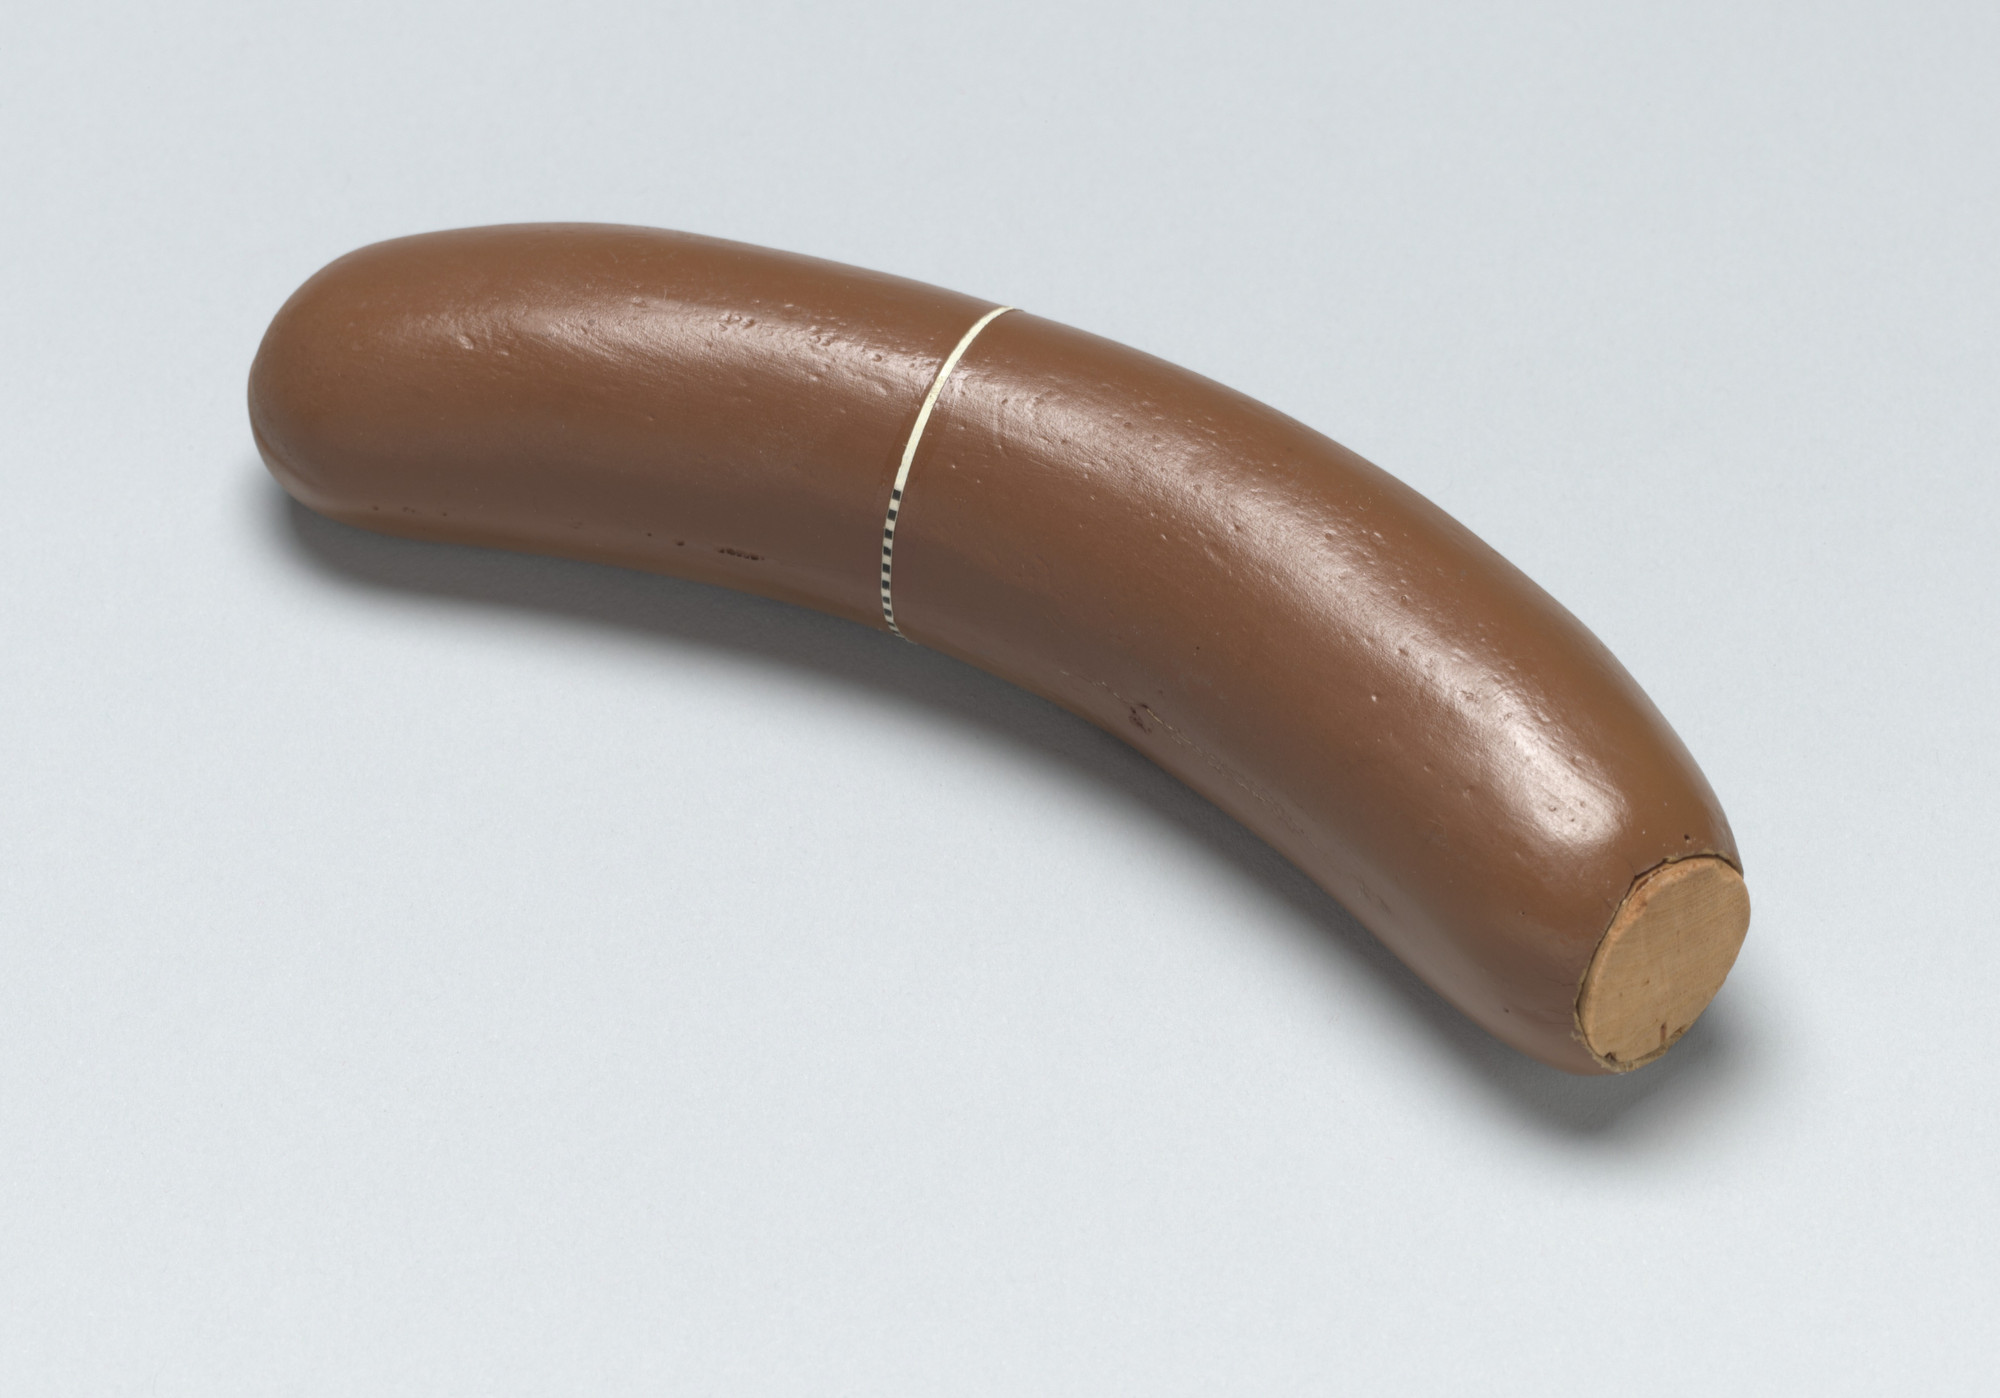 Robert Watts. Hot Dog Rattle. c. 1962